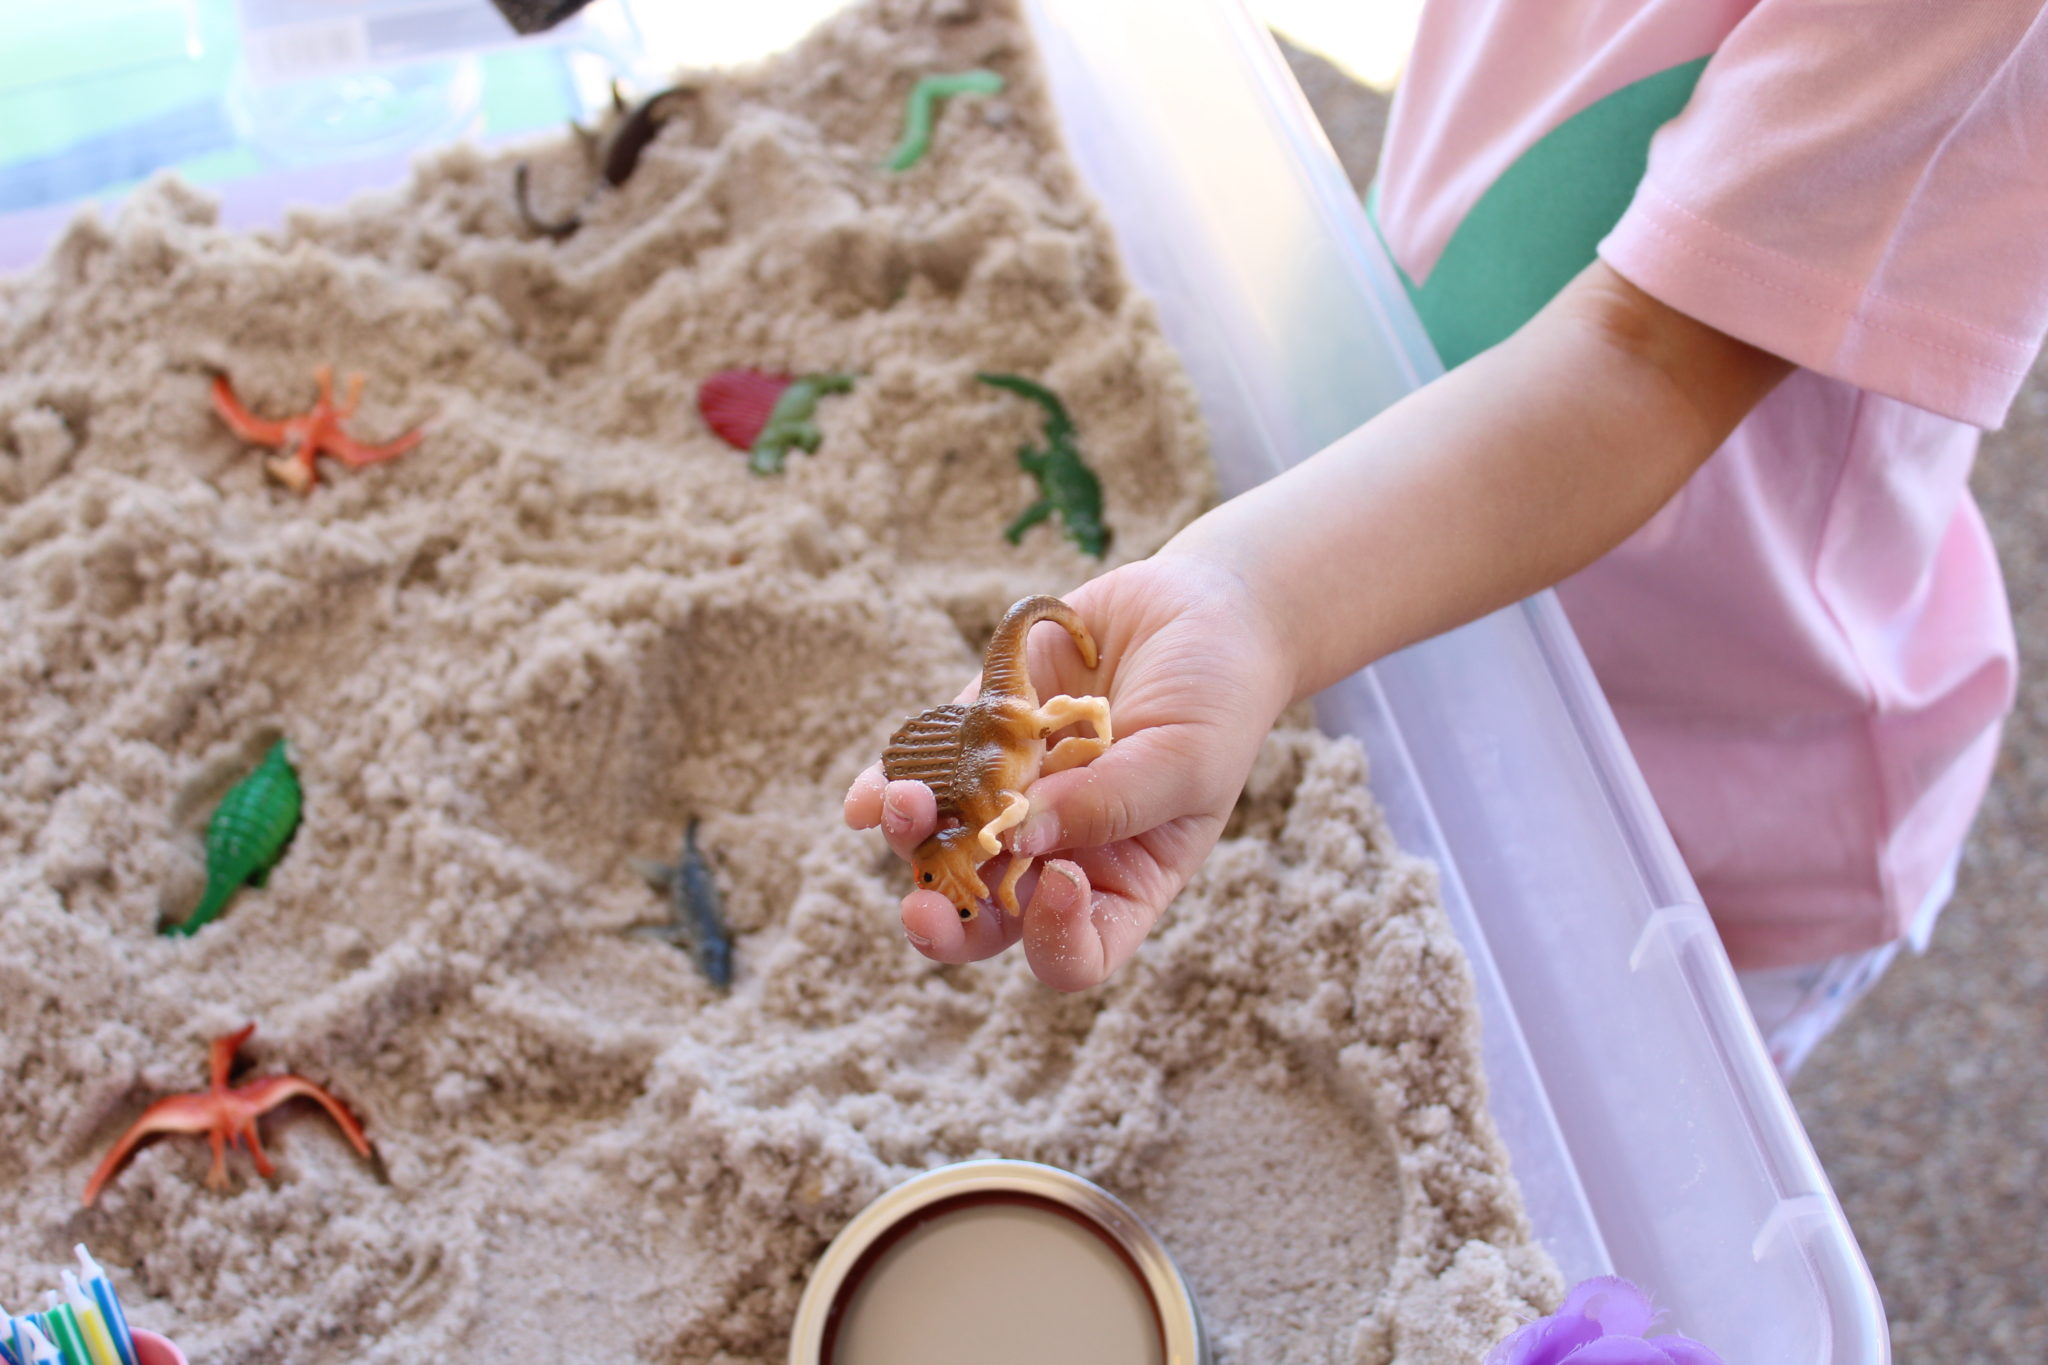 Dinosaur Excavation Sensory Bin for Toddlers